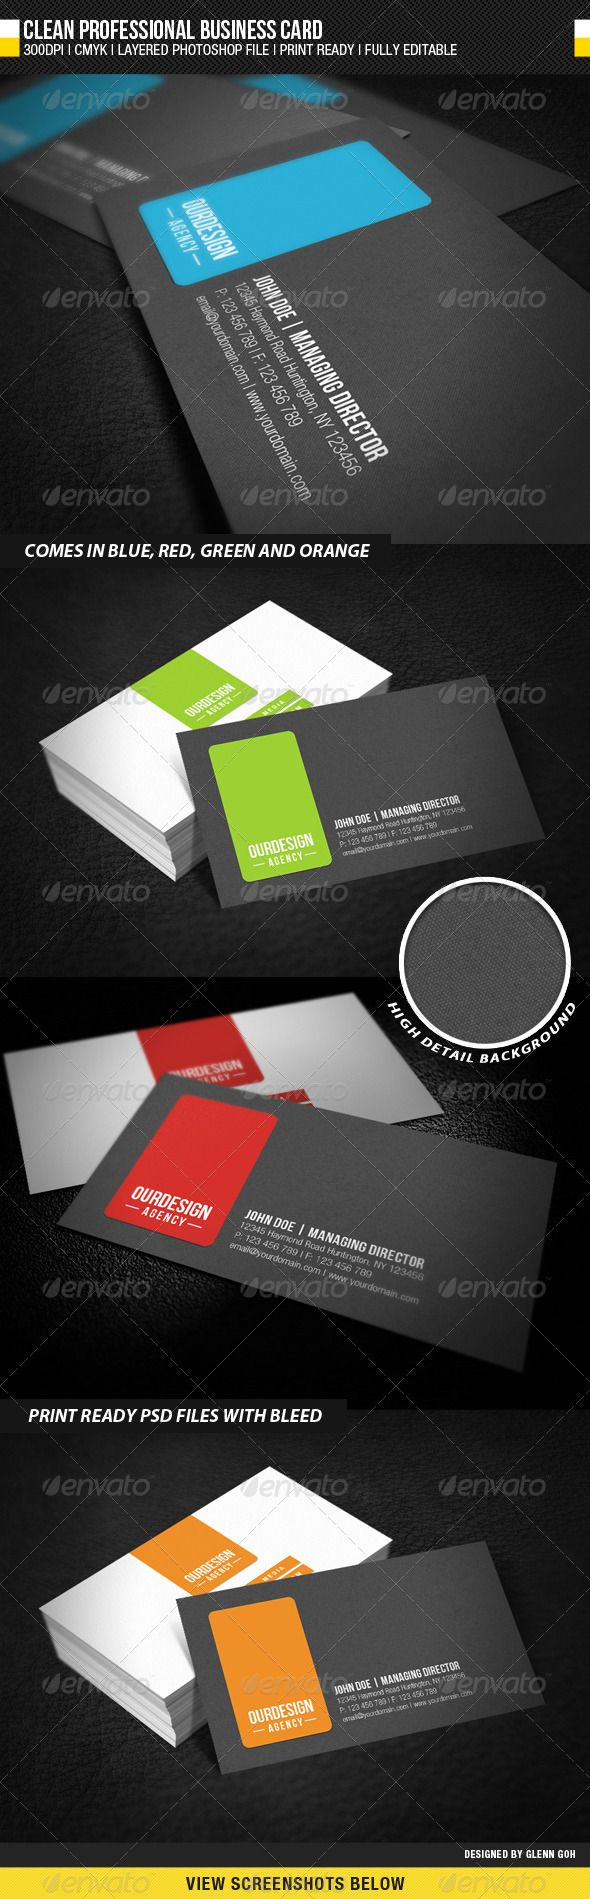 131 best name card business images on pinterest architecture clean professional business card magicingreecefo Choice Image